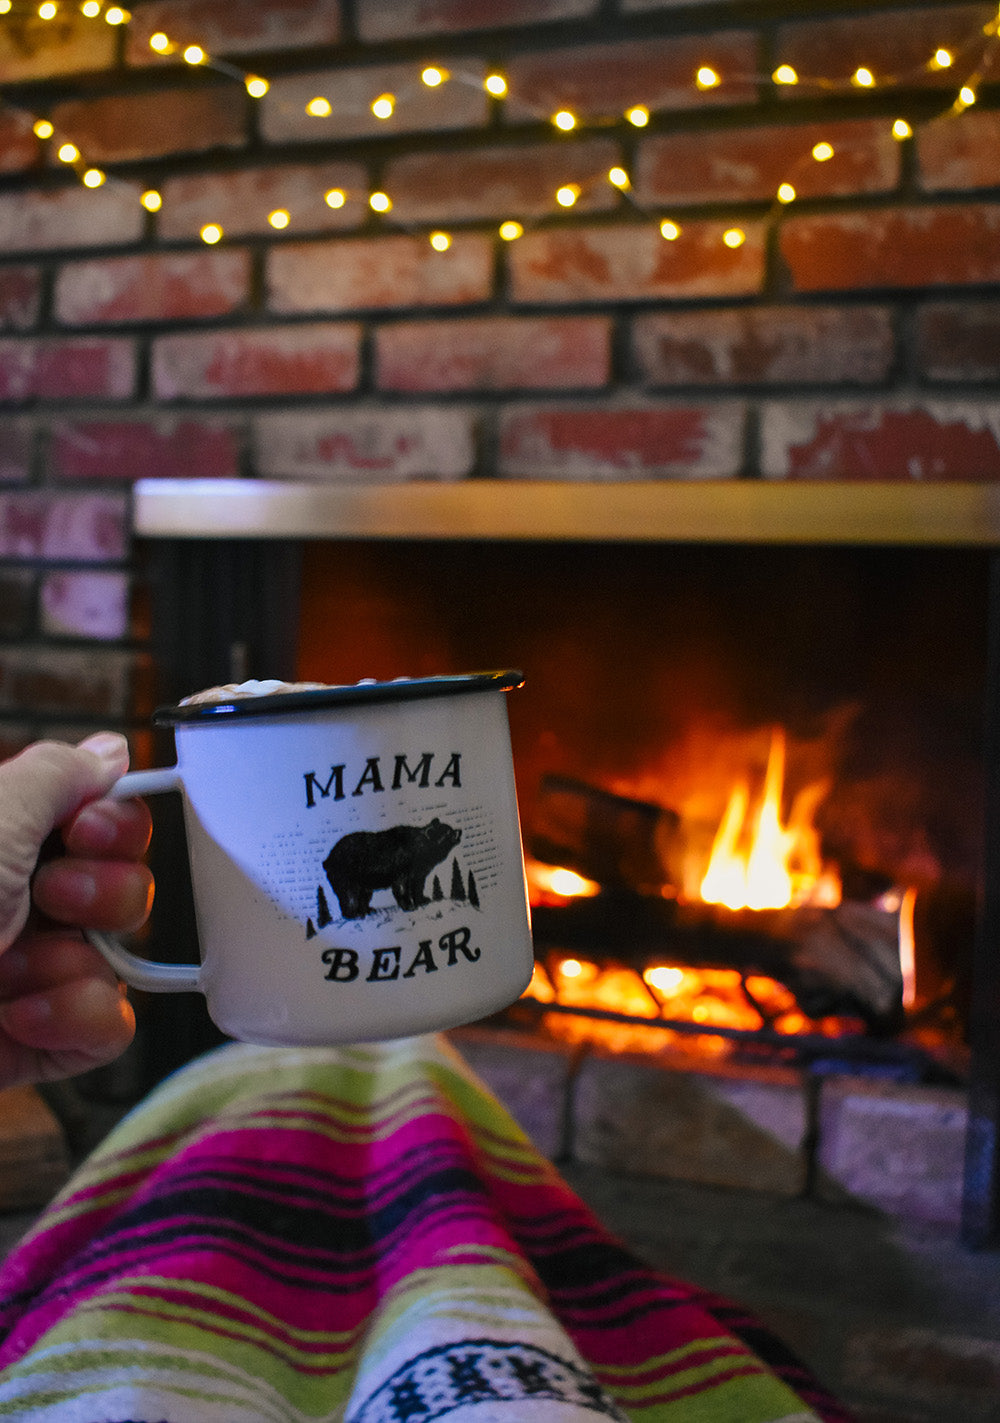 Get cozy by the fire with an Enamel Camp Mug filled with a hot cup of cocoa (with extra marshmallows of course!) while snuggled under a Bohemian Fiesta Blanket. Forget the cold, gloomy weather outside by gazing into the fire and pretending to be by the firepit at your favorite campground, relaxing after a fun filled day of hiking the mountain trails with your best friend.